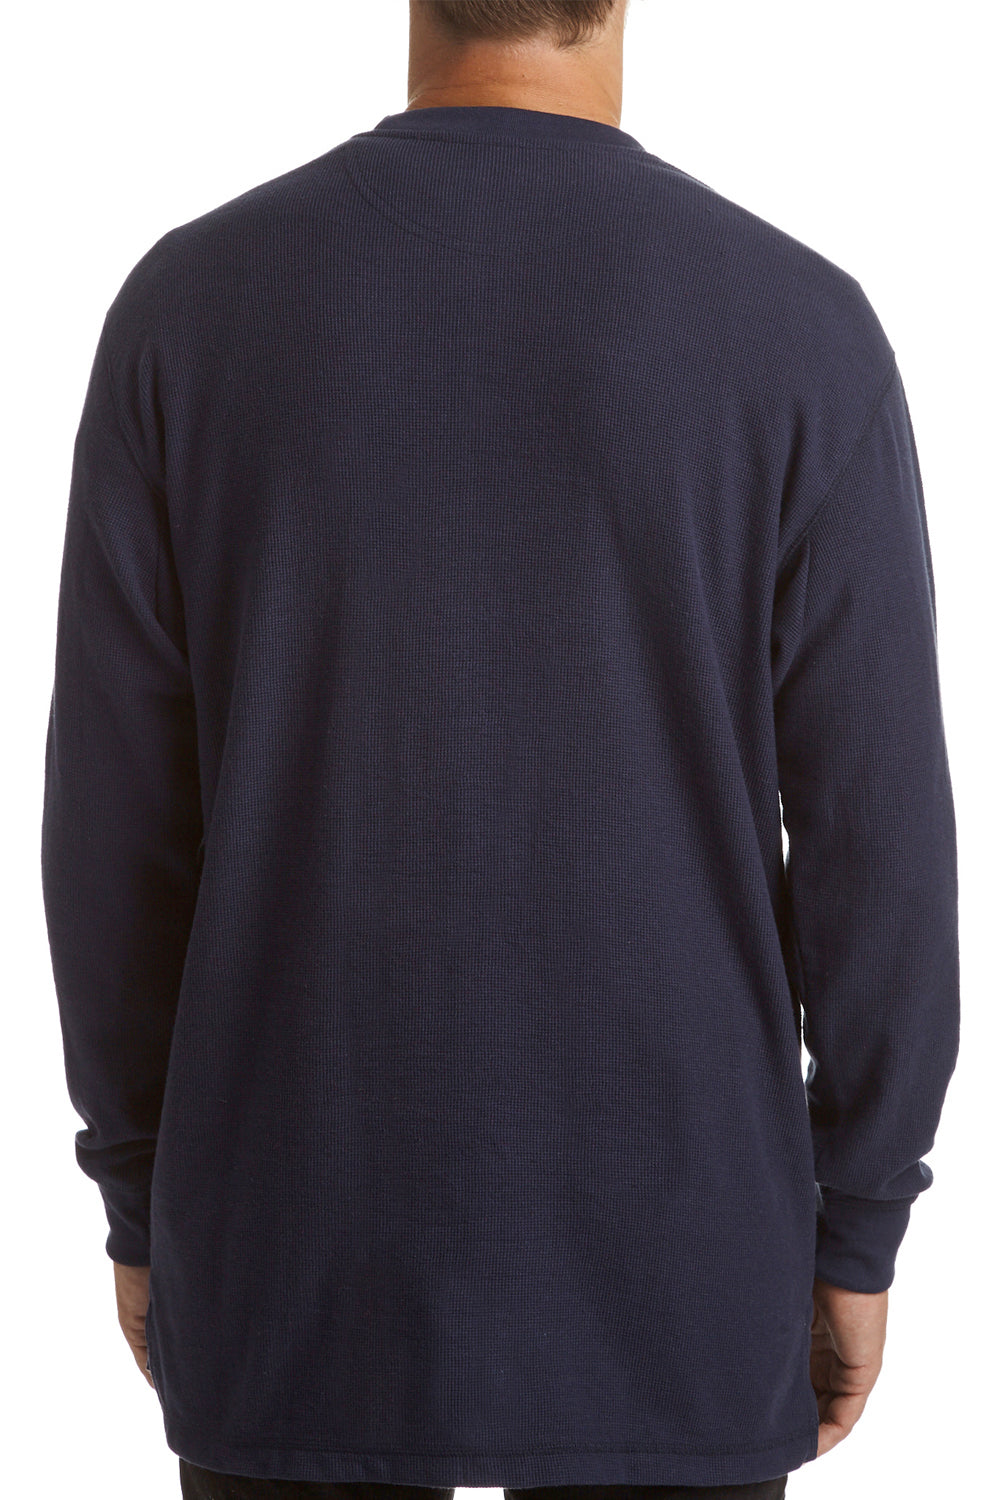 Long-sleeve Thermal Crew Neck - navy